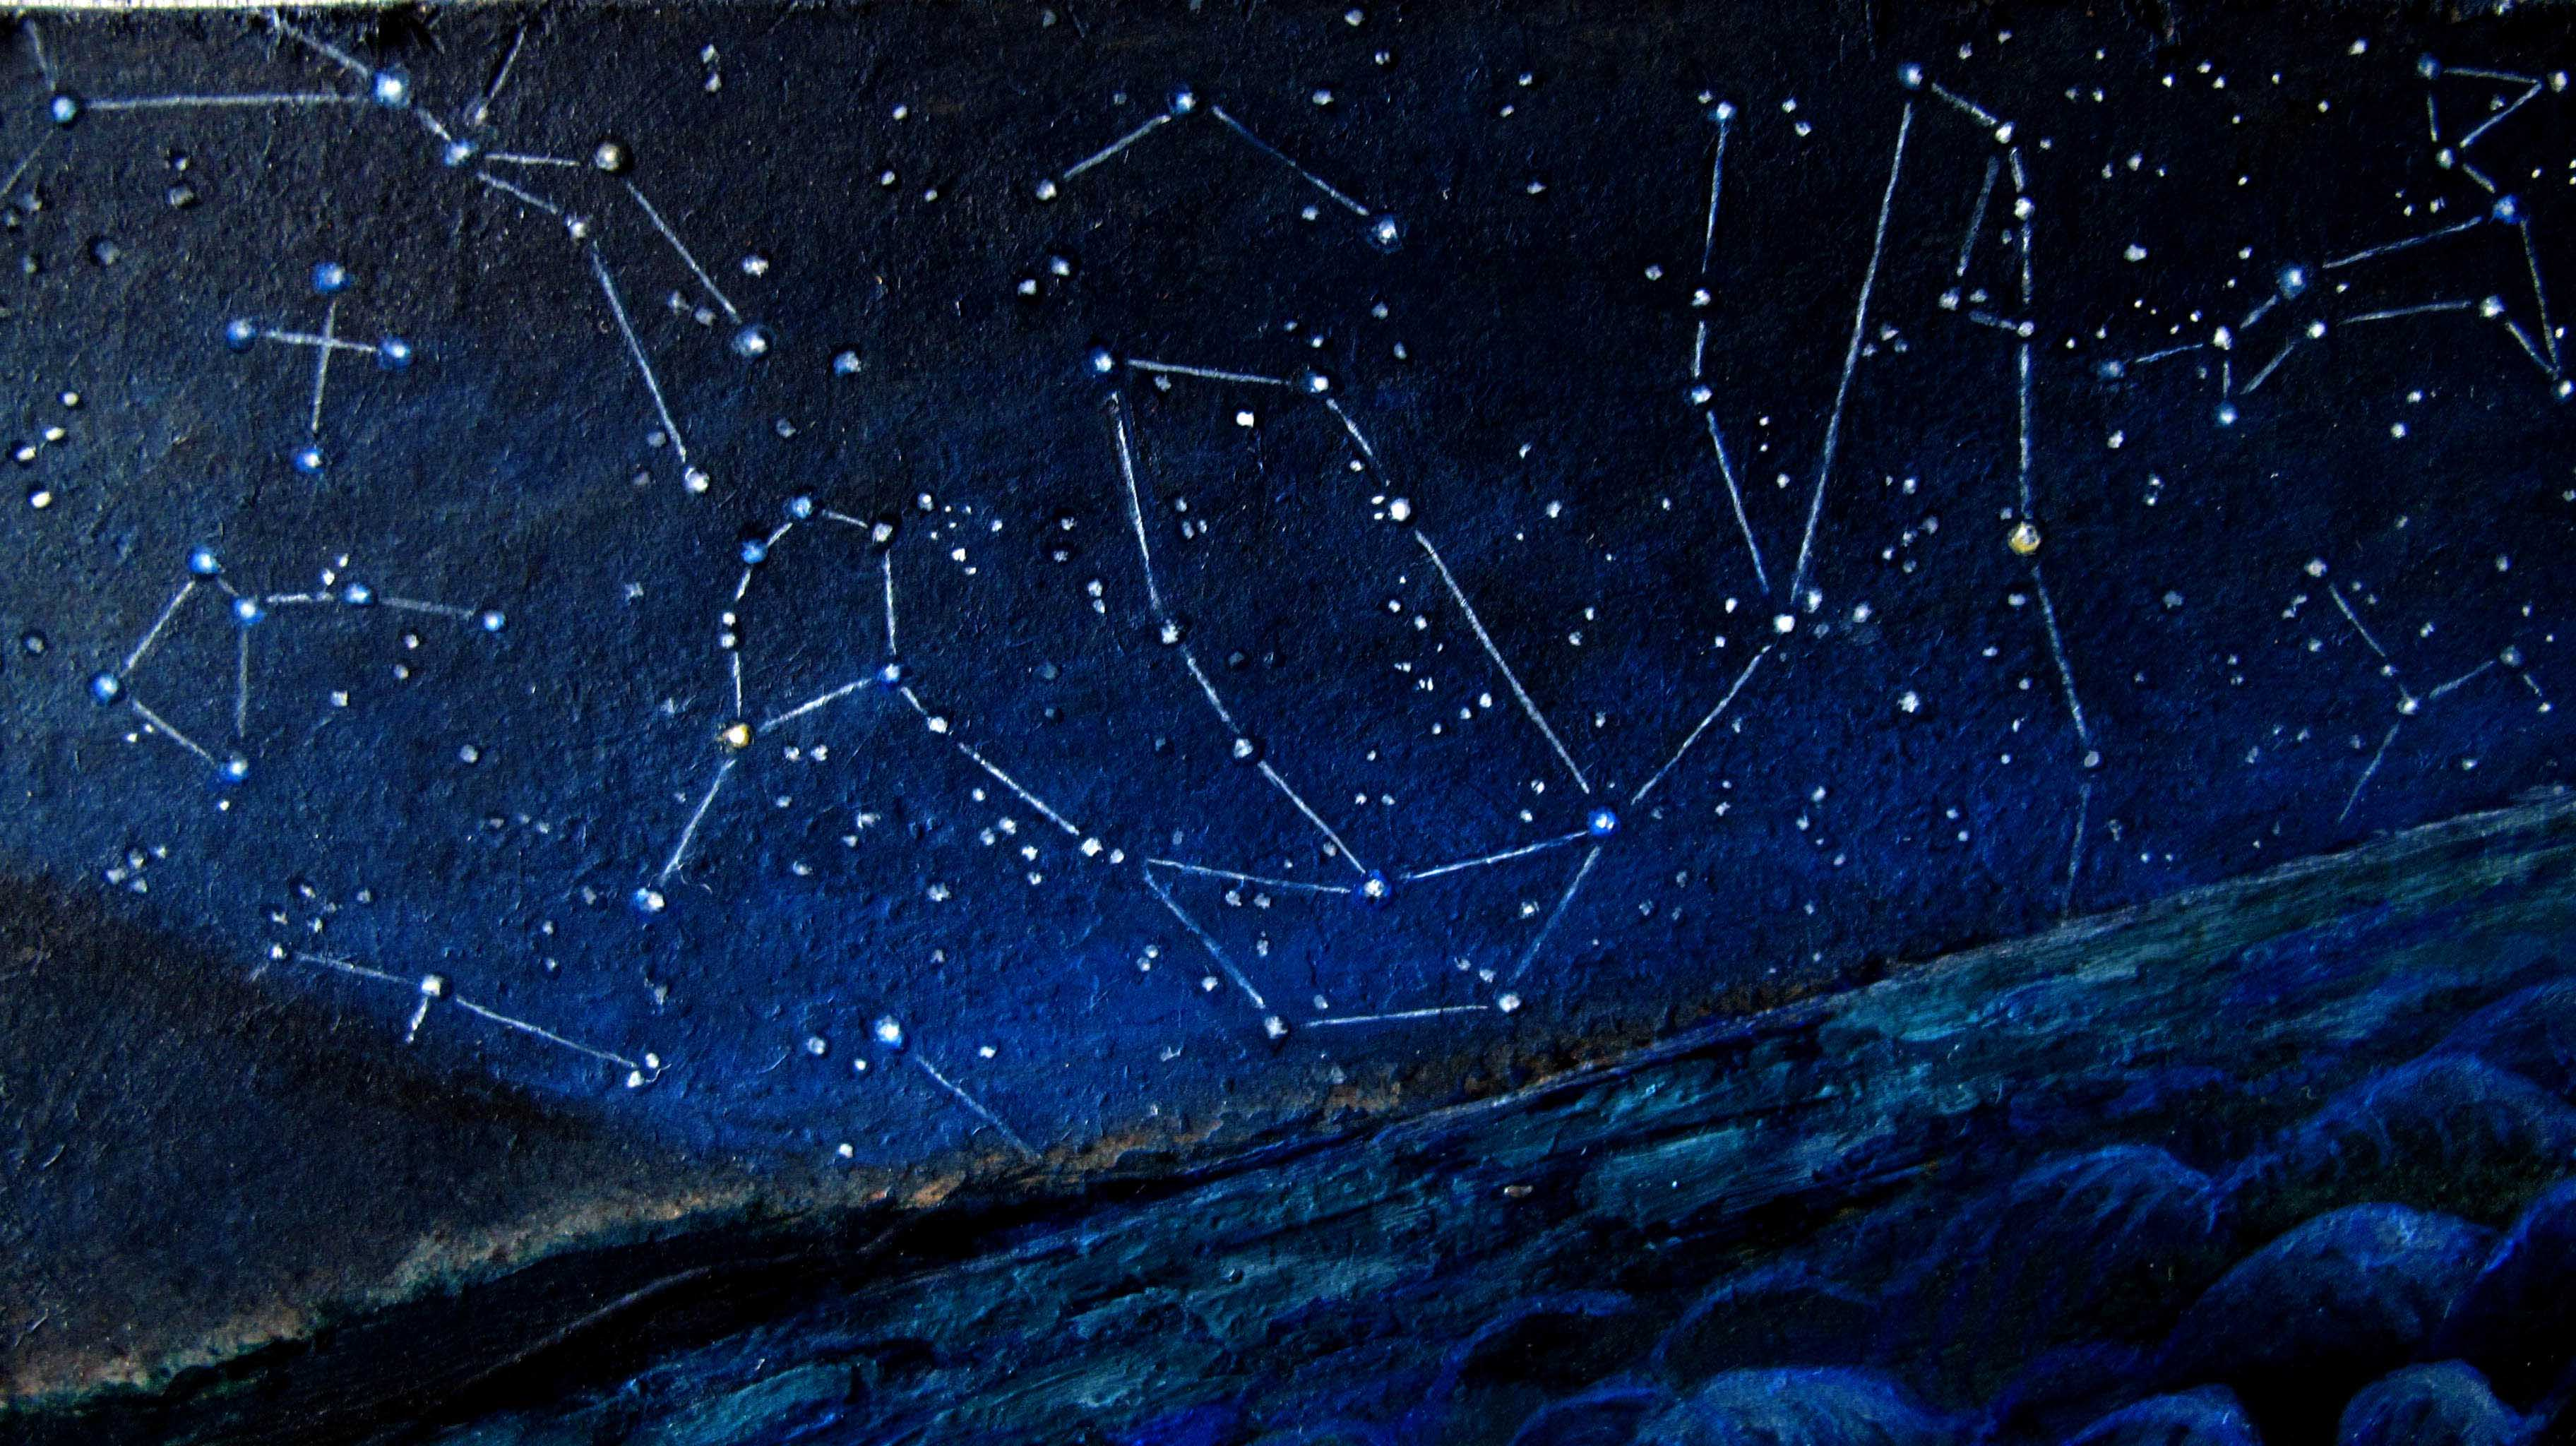 These backg round constellations are easily overlooked but if you look 3648x2048